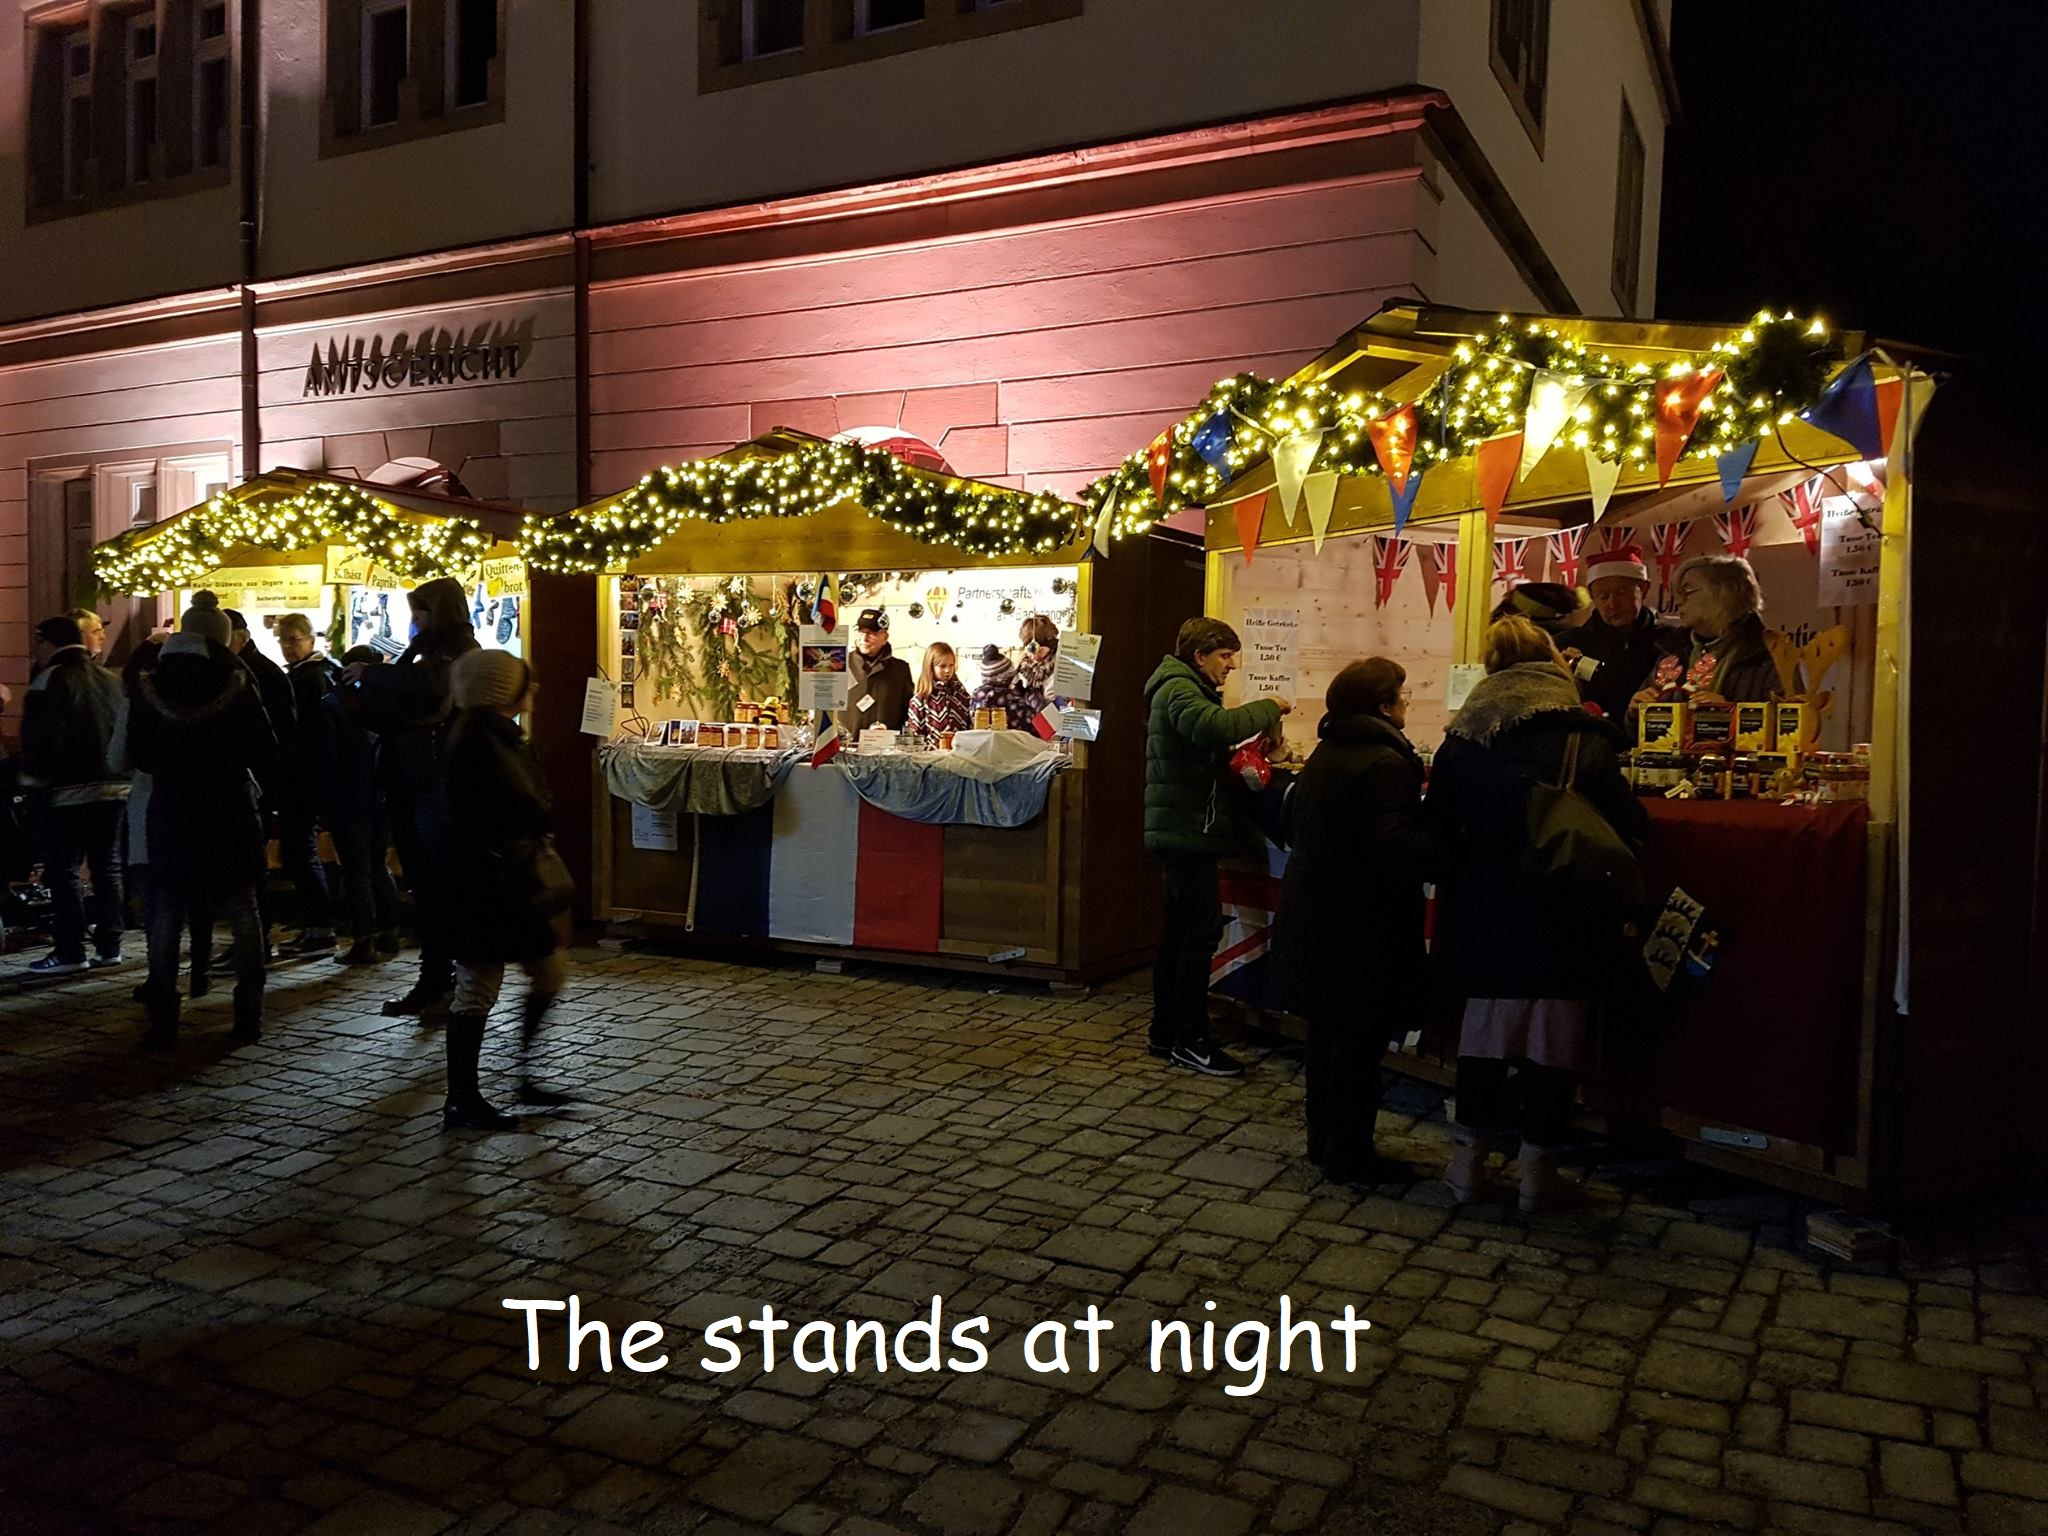 Annonay & Chelmsford stands at night titled.jpg